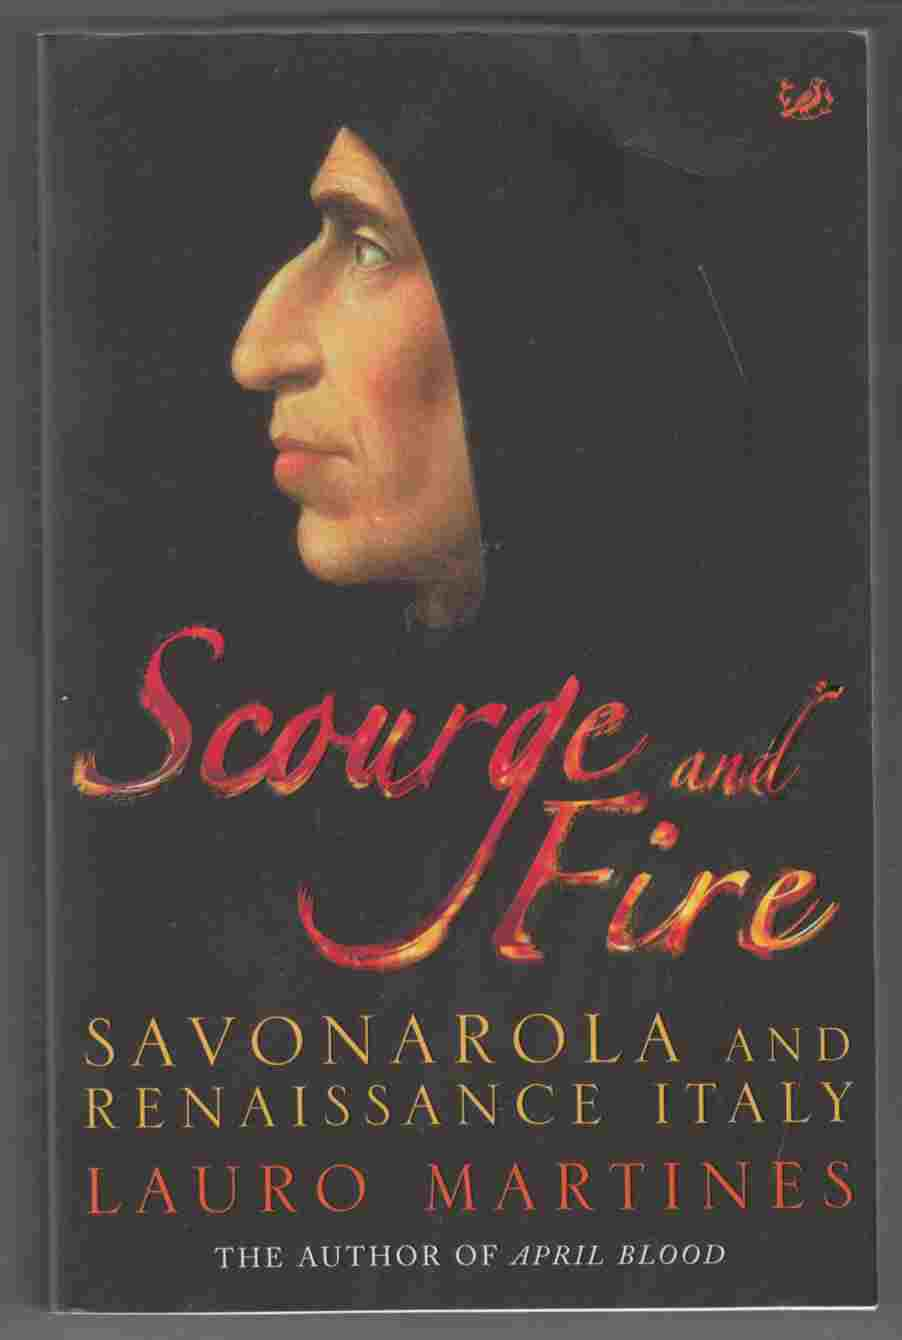 Image for Scourge and Fire Savonarola and Renaissance Italy